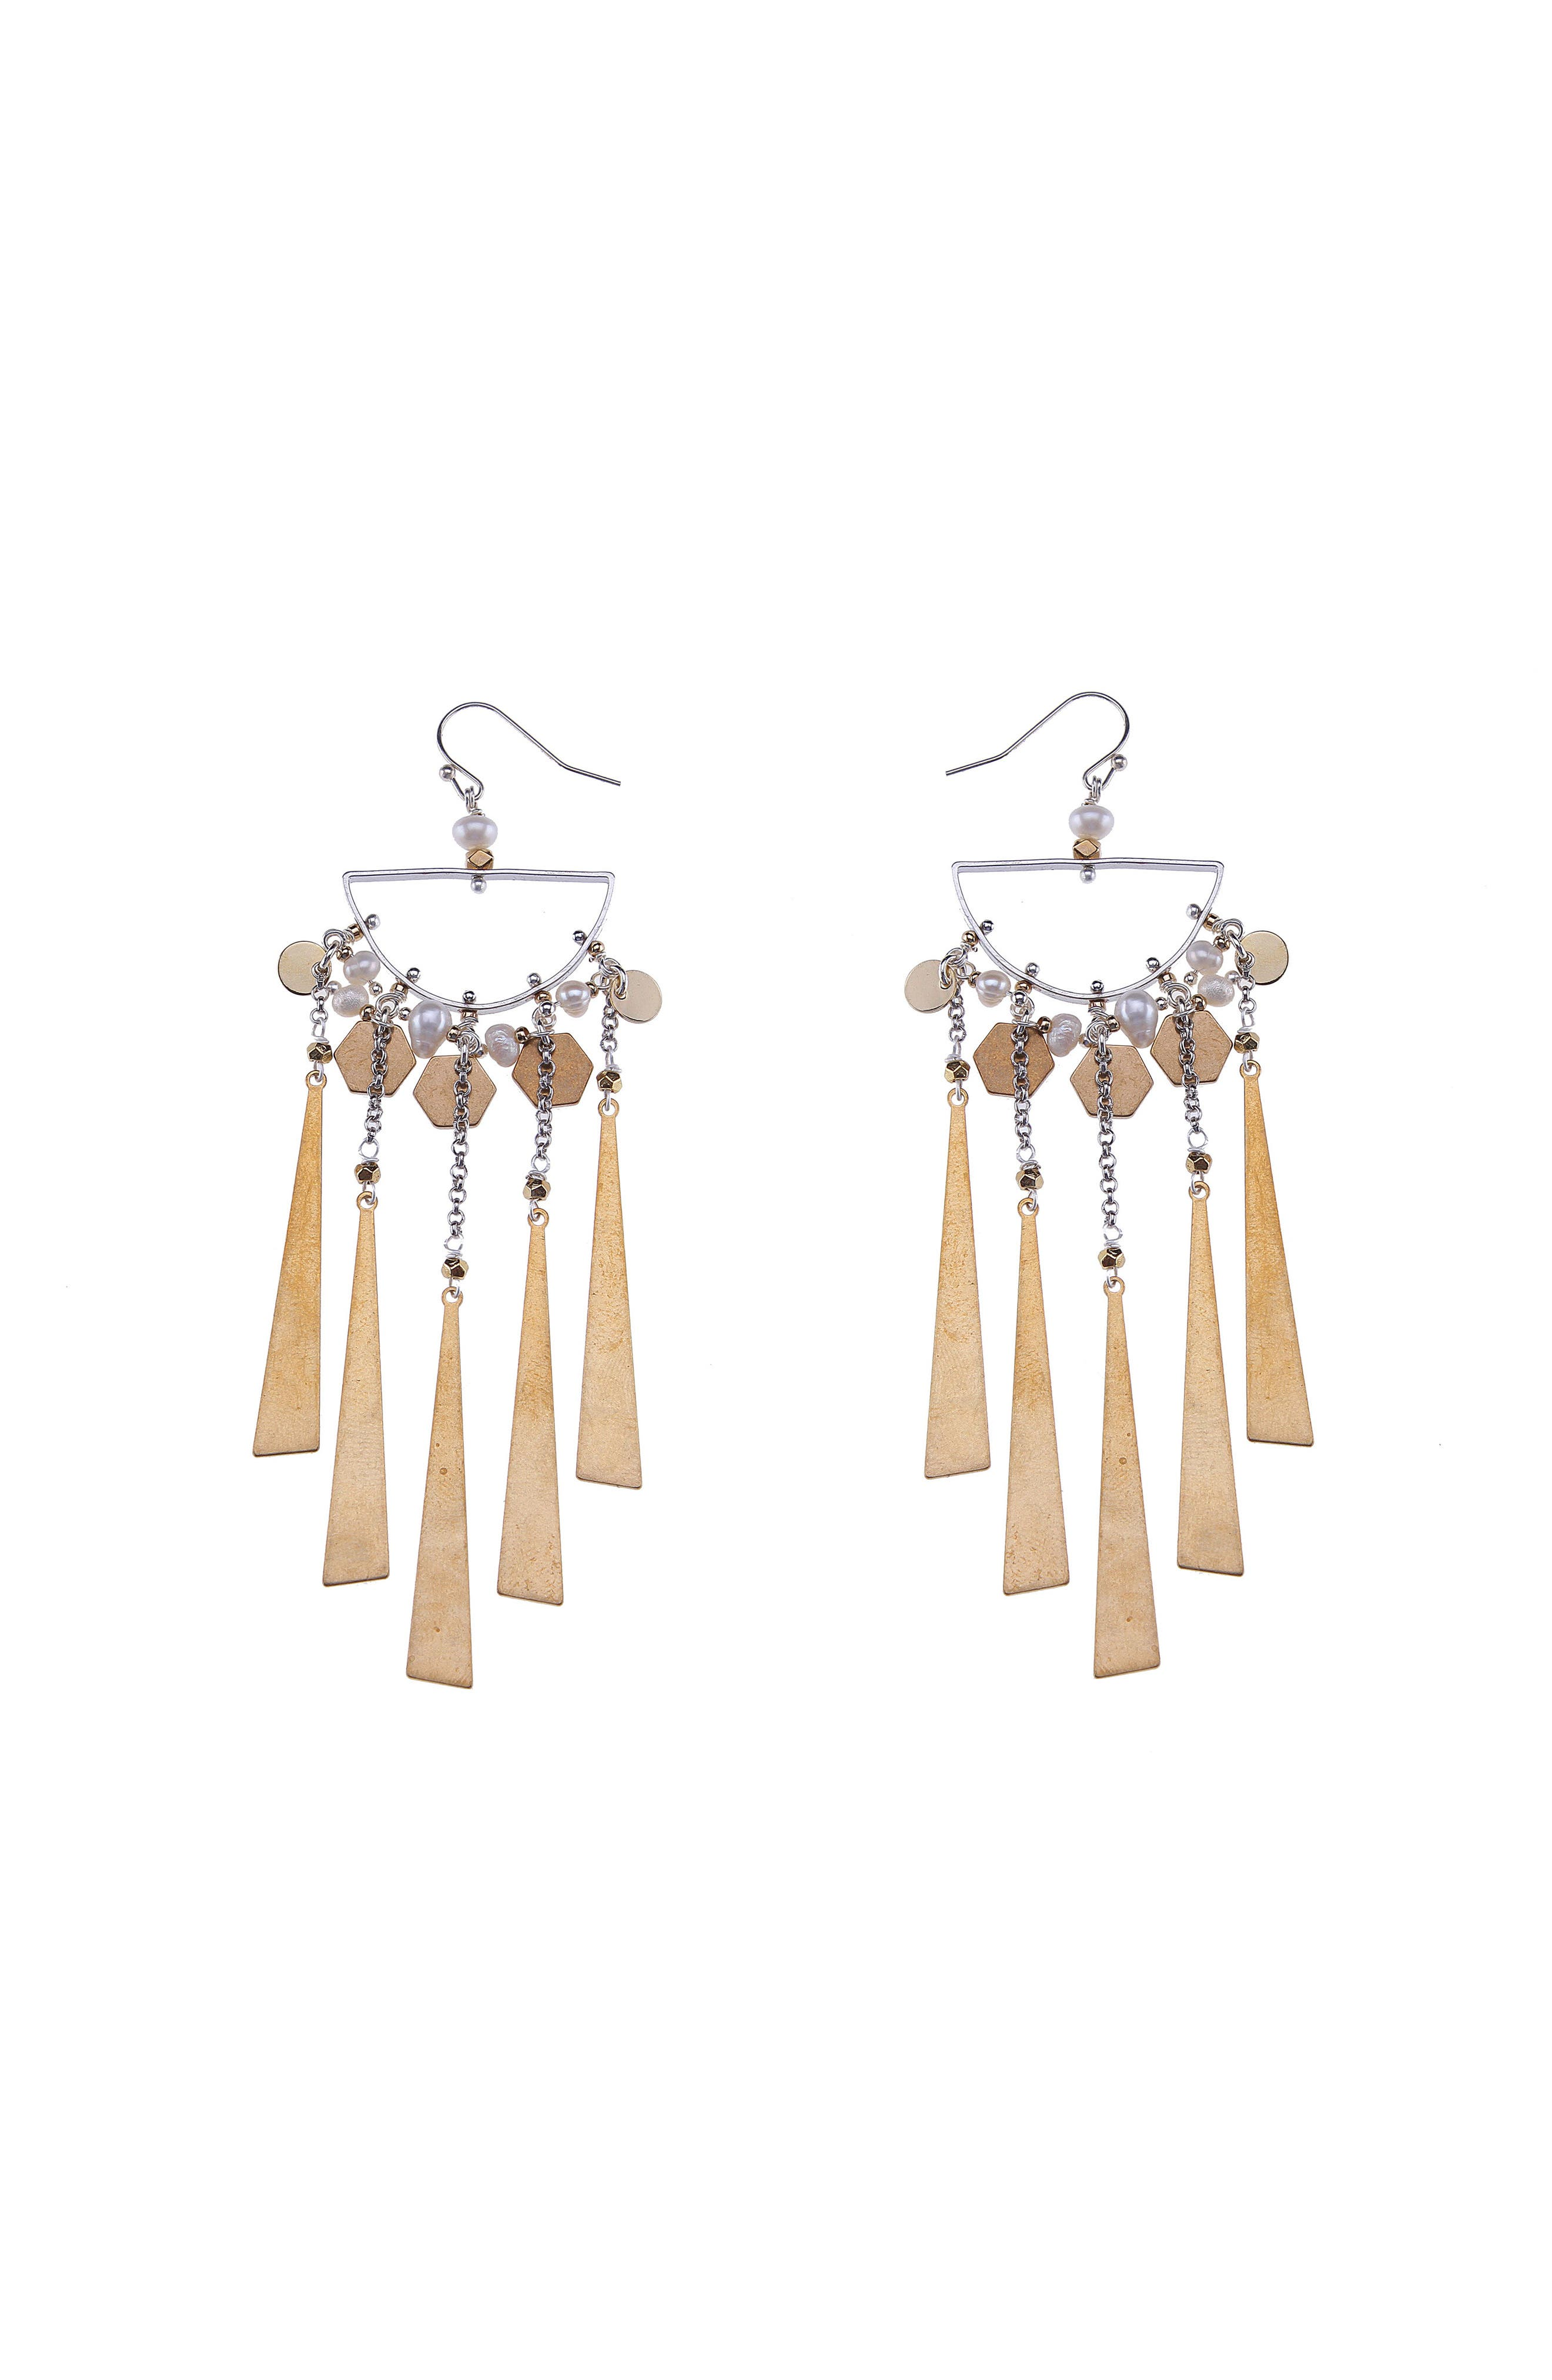 Freshwater Pearl & Metal Fringe Statement Earrings,                         Main,                         color, Gold/ Silver